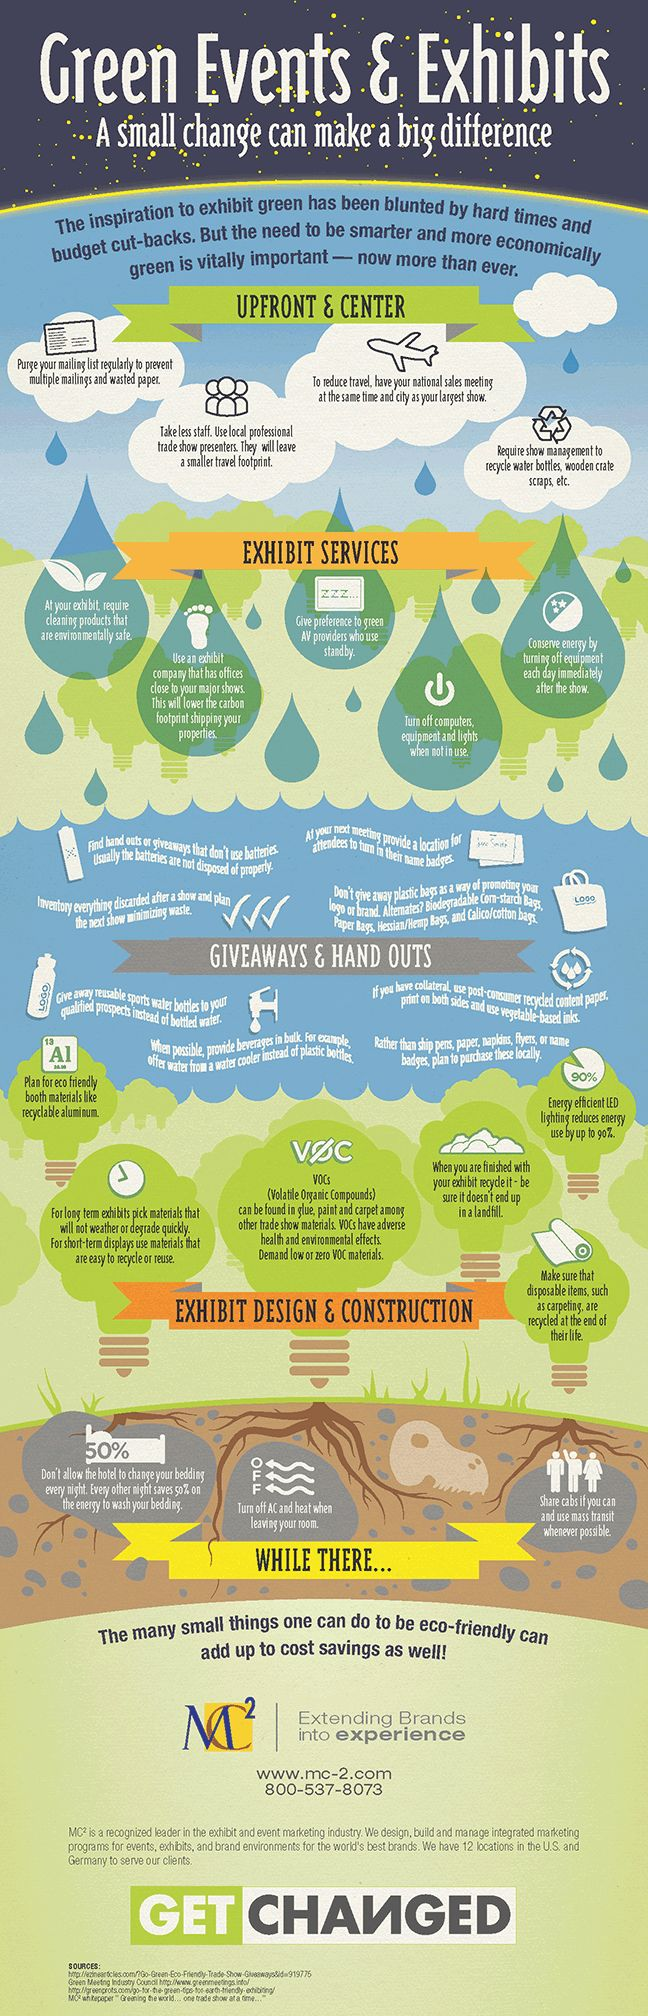 Green Events u0026 Exhibits excellent infographic with